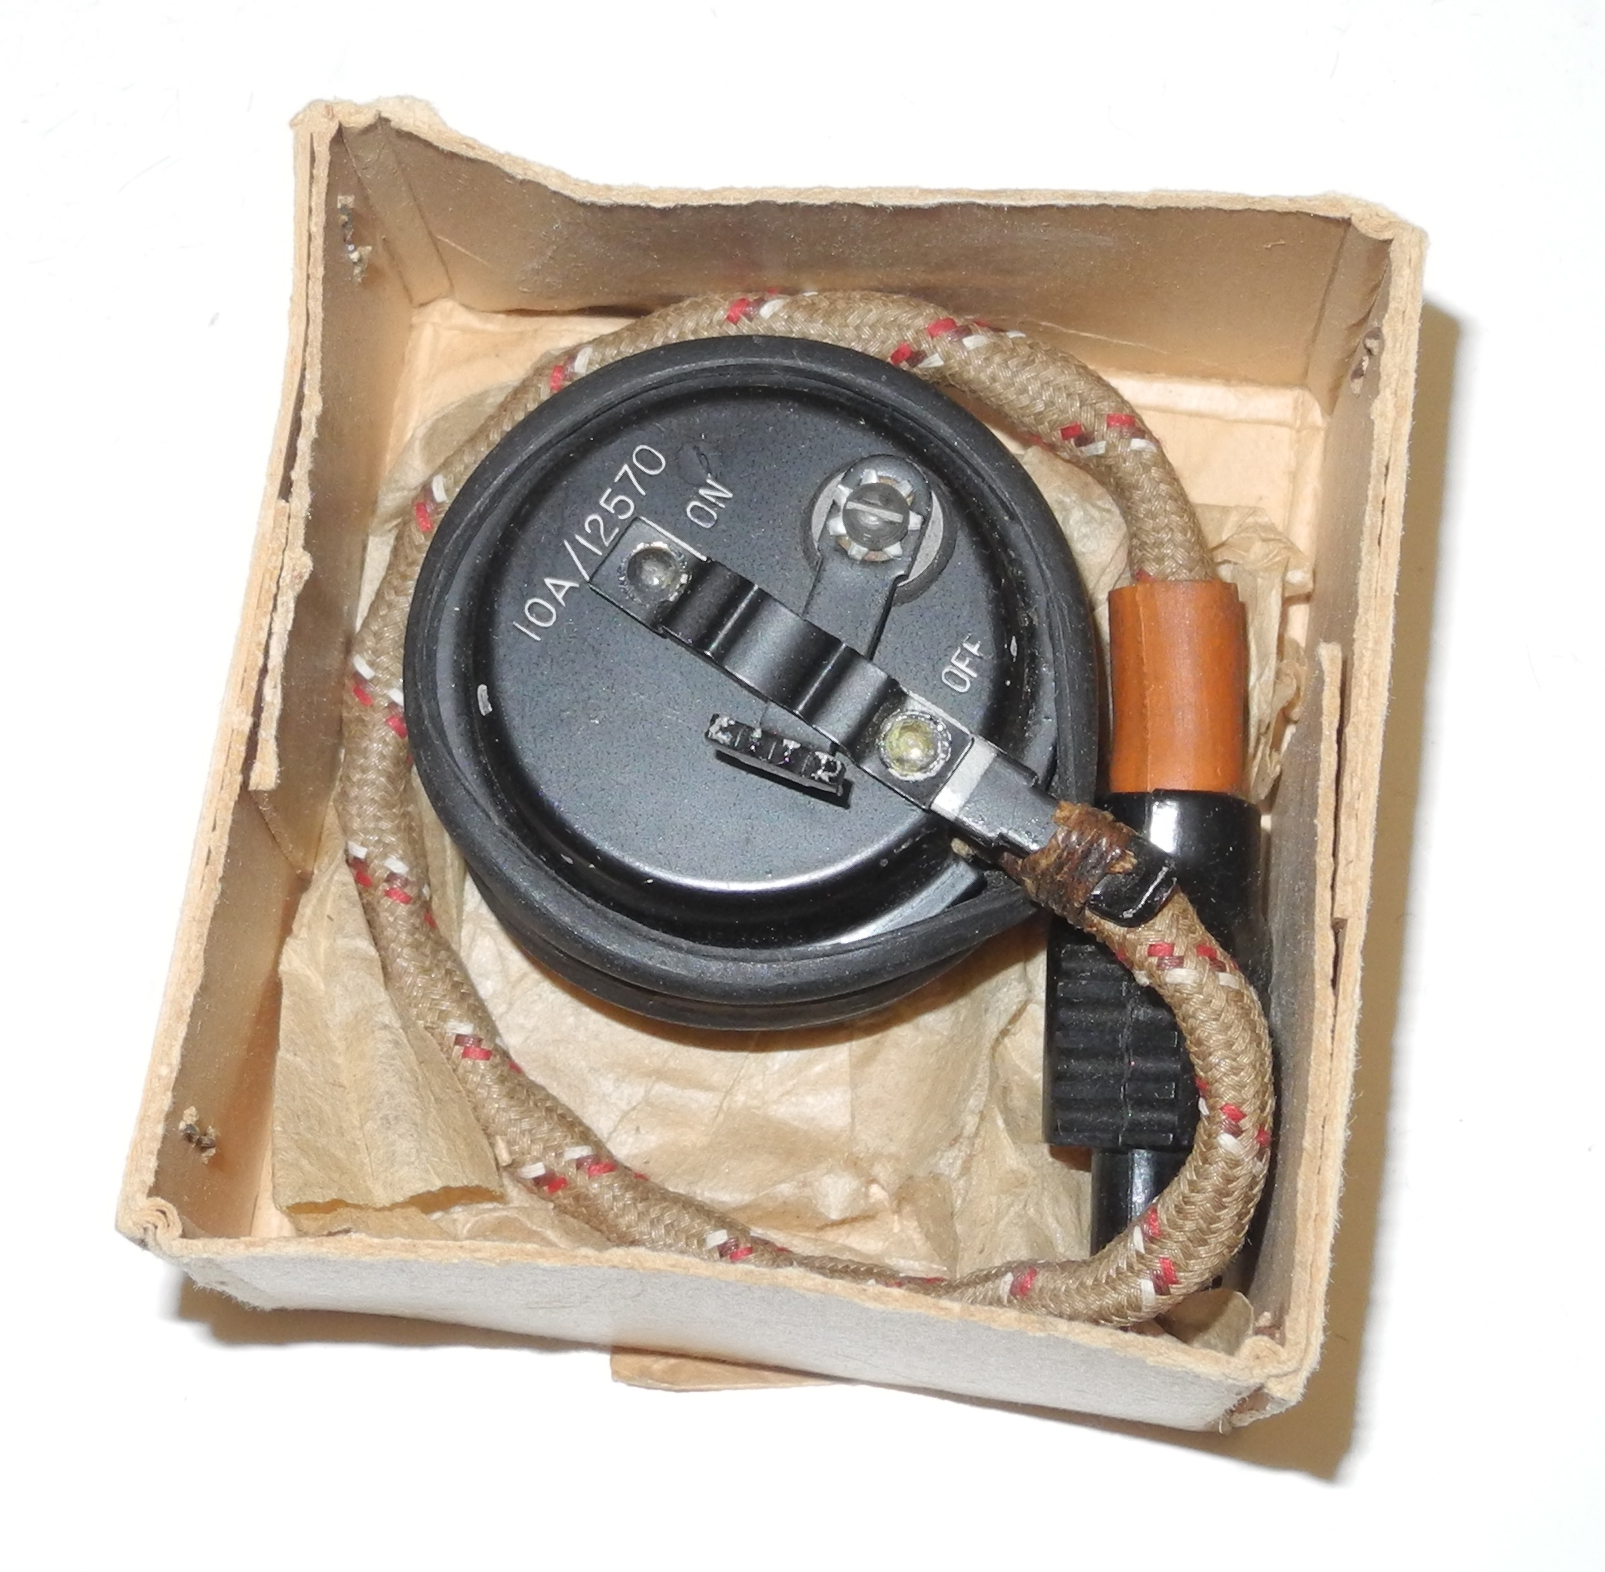 RAF Type 48 microphone boxed, unissued